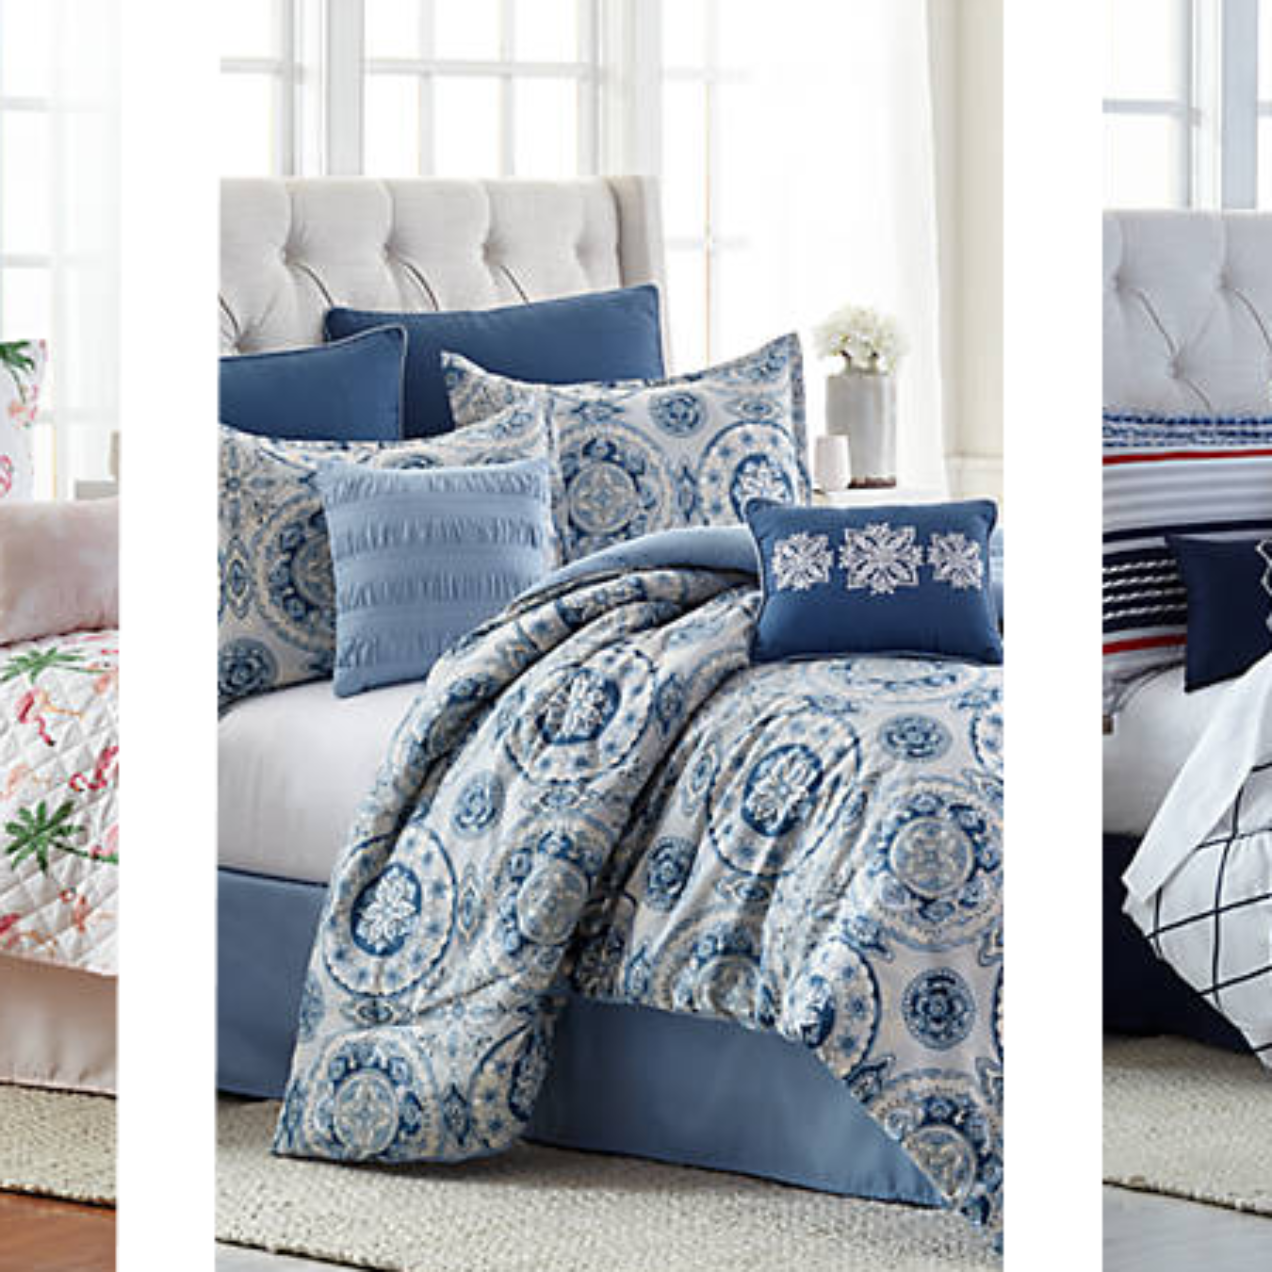 Southern Home 6 Piece Bedding Sets Only $29 (regular up to $100) – All Sizes!